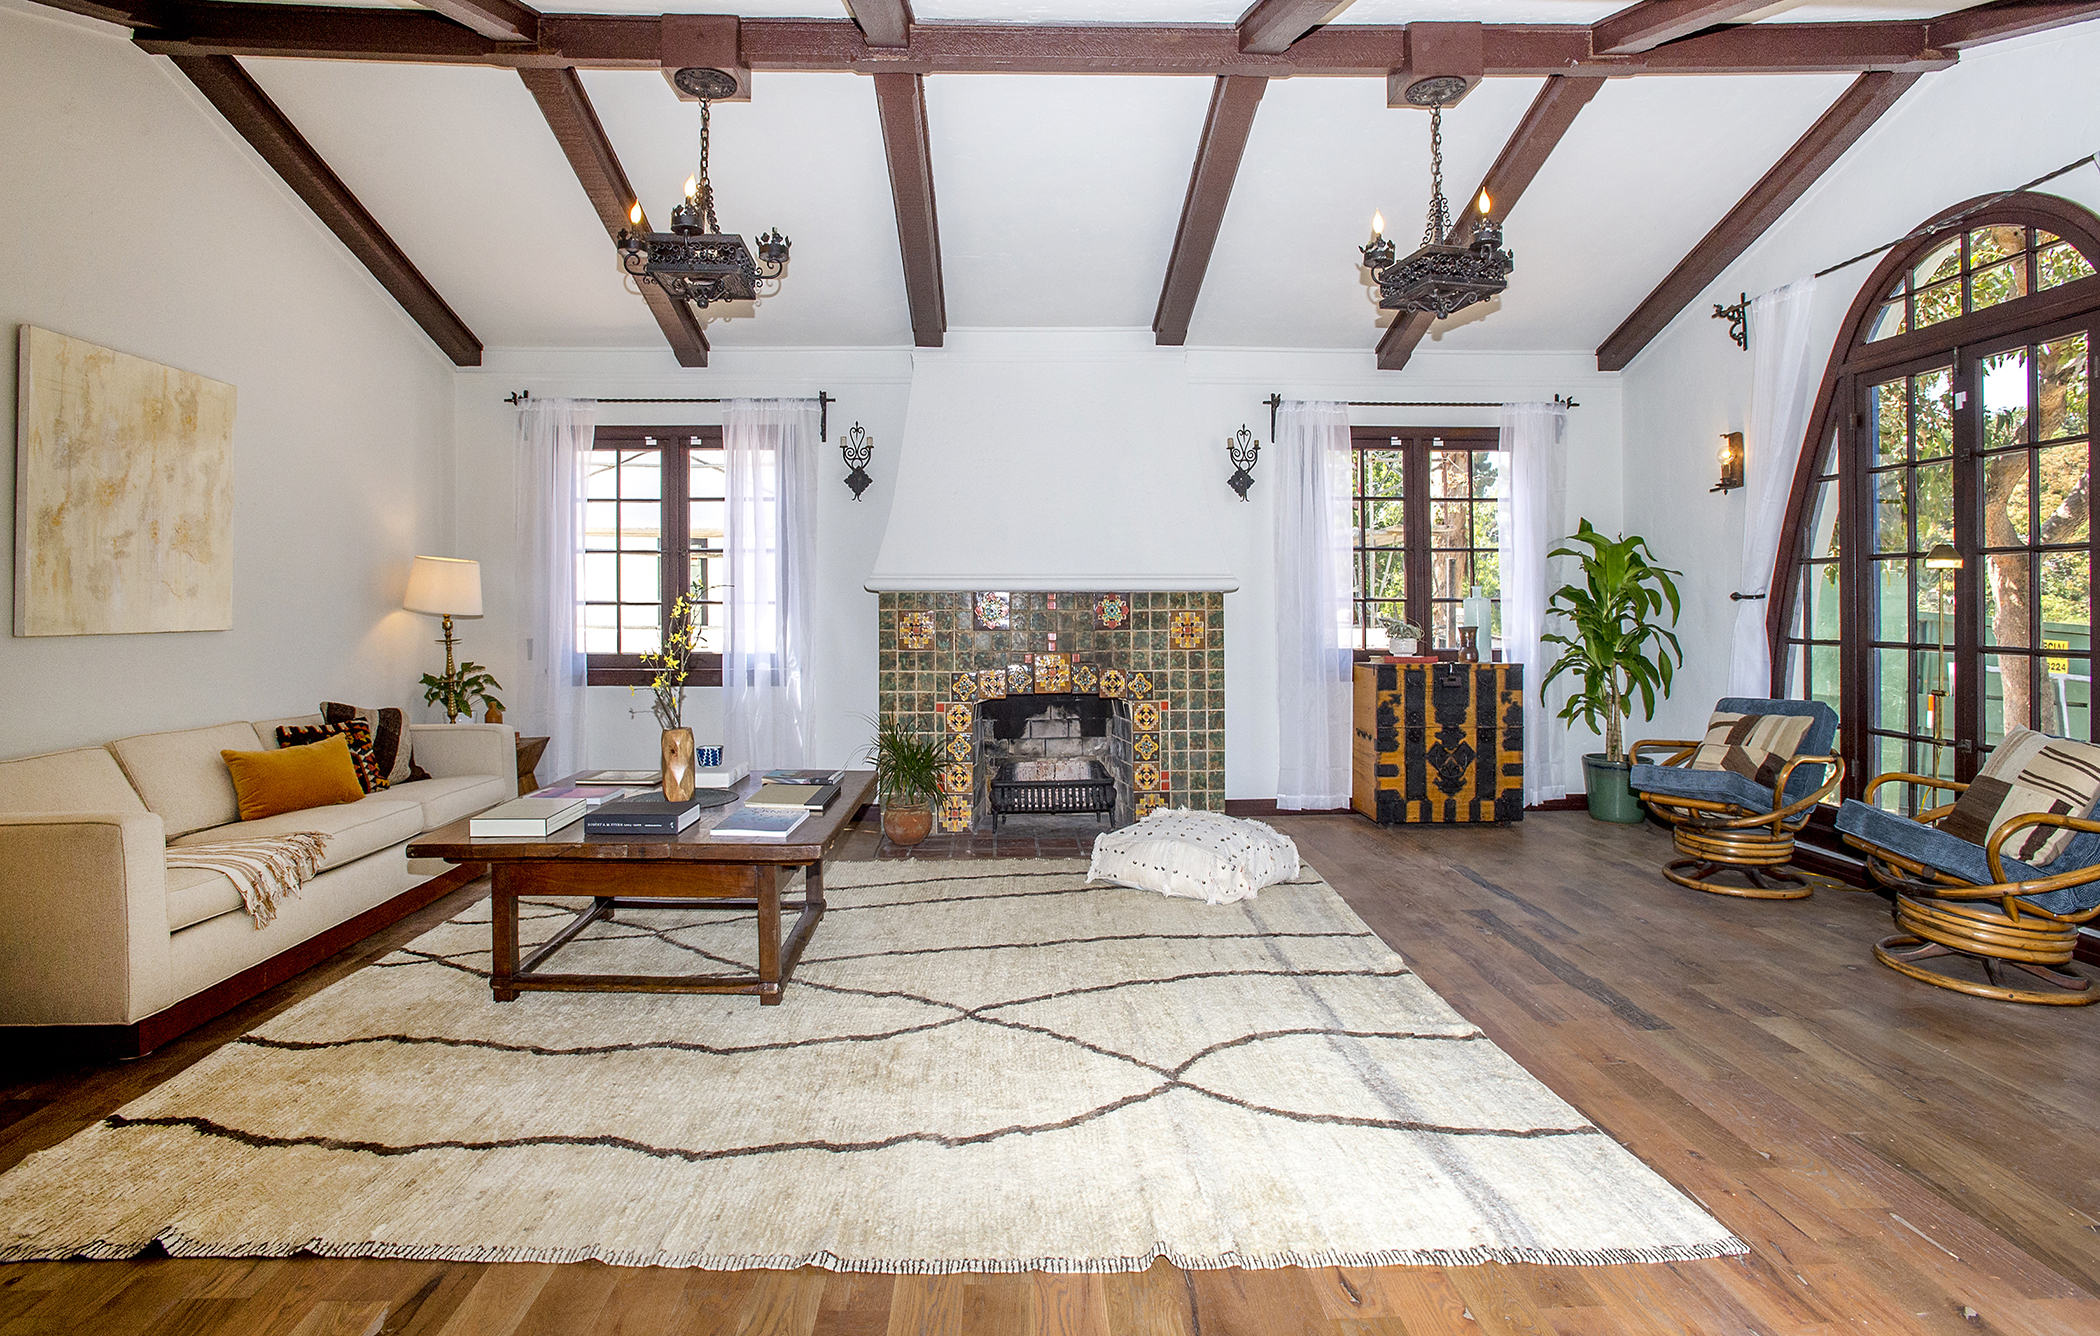 eagle rock los angeles curbed la dramatic spanish style house with painted ceilings asks 1 6m in eagle rock